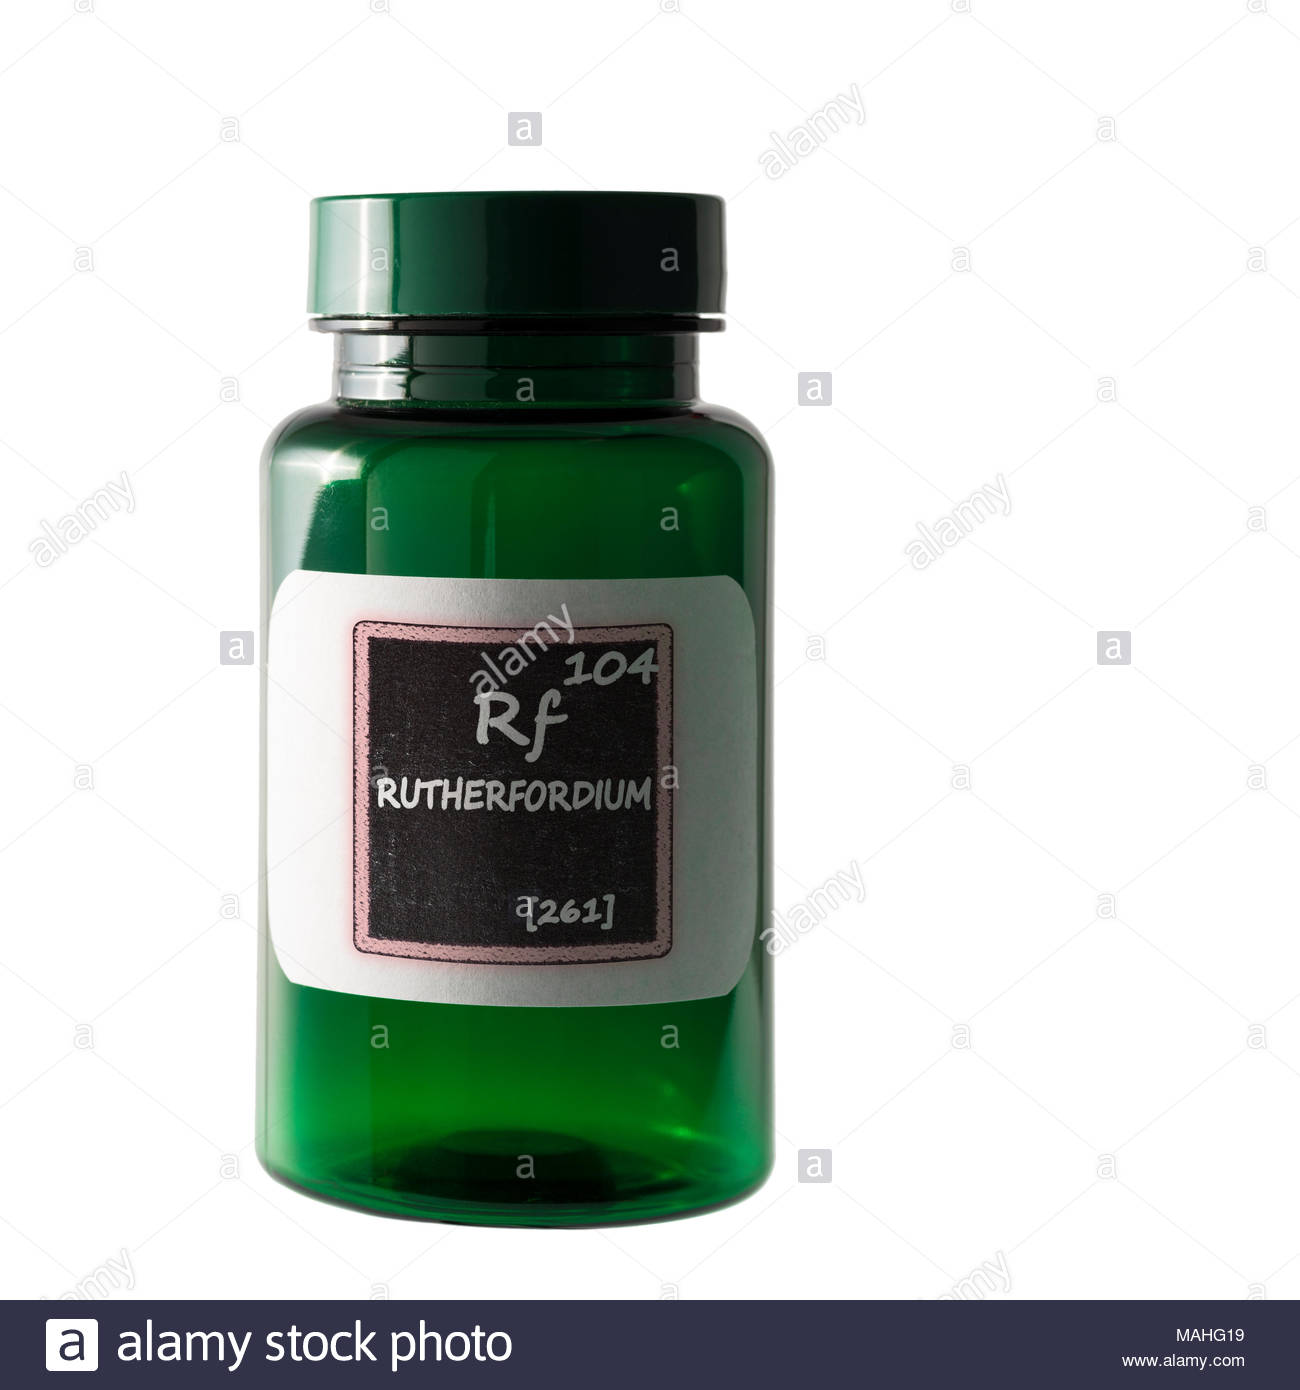 Rutherfordium, periodic table details  shown on bottle label. Stock Photo